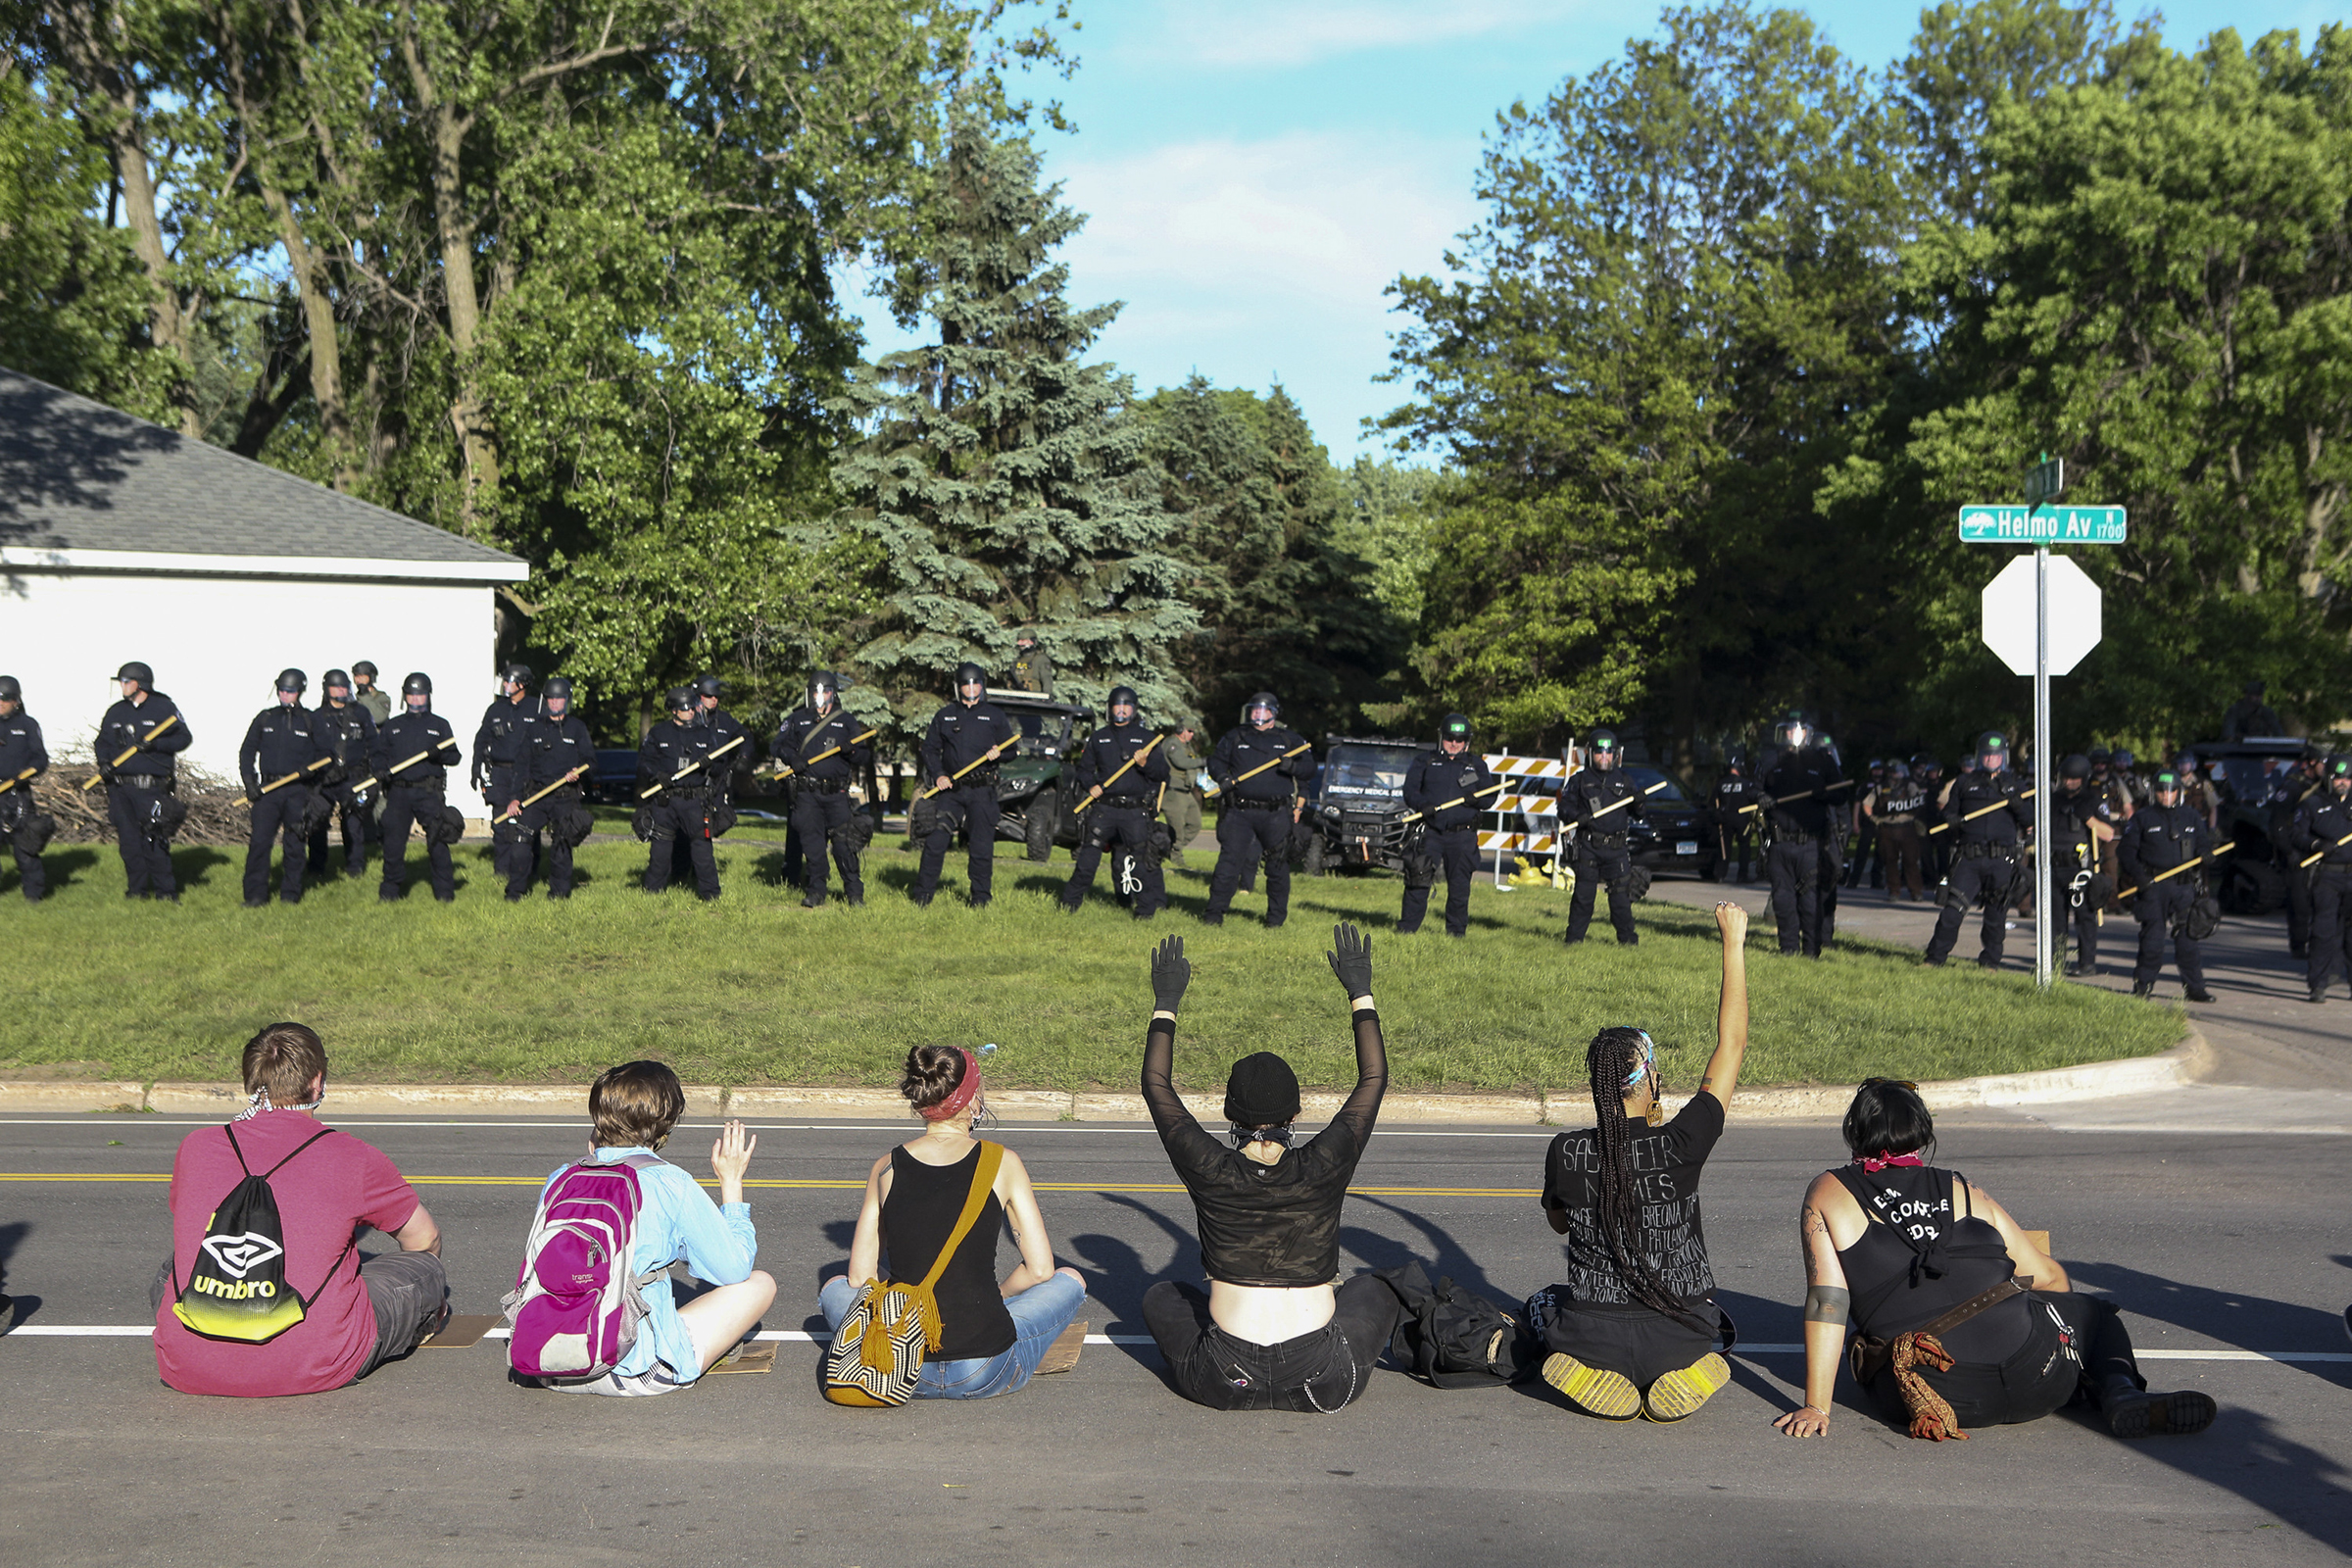 Demonstrators sit before a police line outside the home of Derek Chauvin, the since-fired Minneapolis officer who pinned down George Floyd with a knee on his neck, in the suburb of Oakdale on May 28.